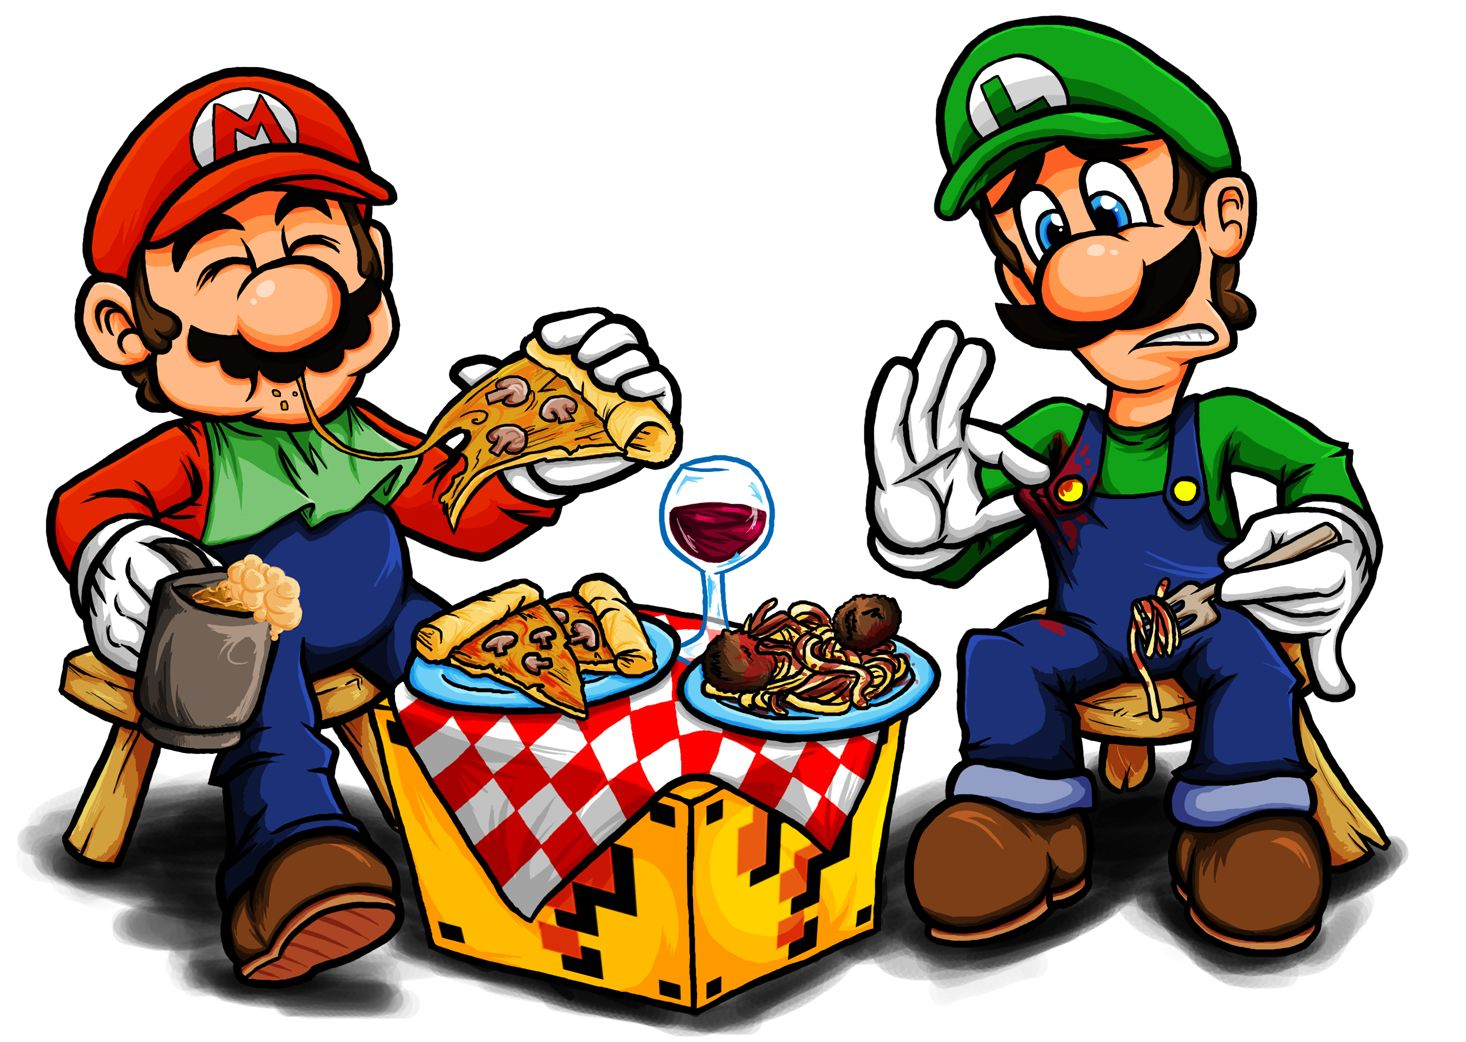 pizza time mario bros mario smash bros funny mario bros mario smash bros